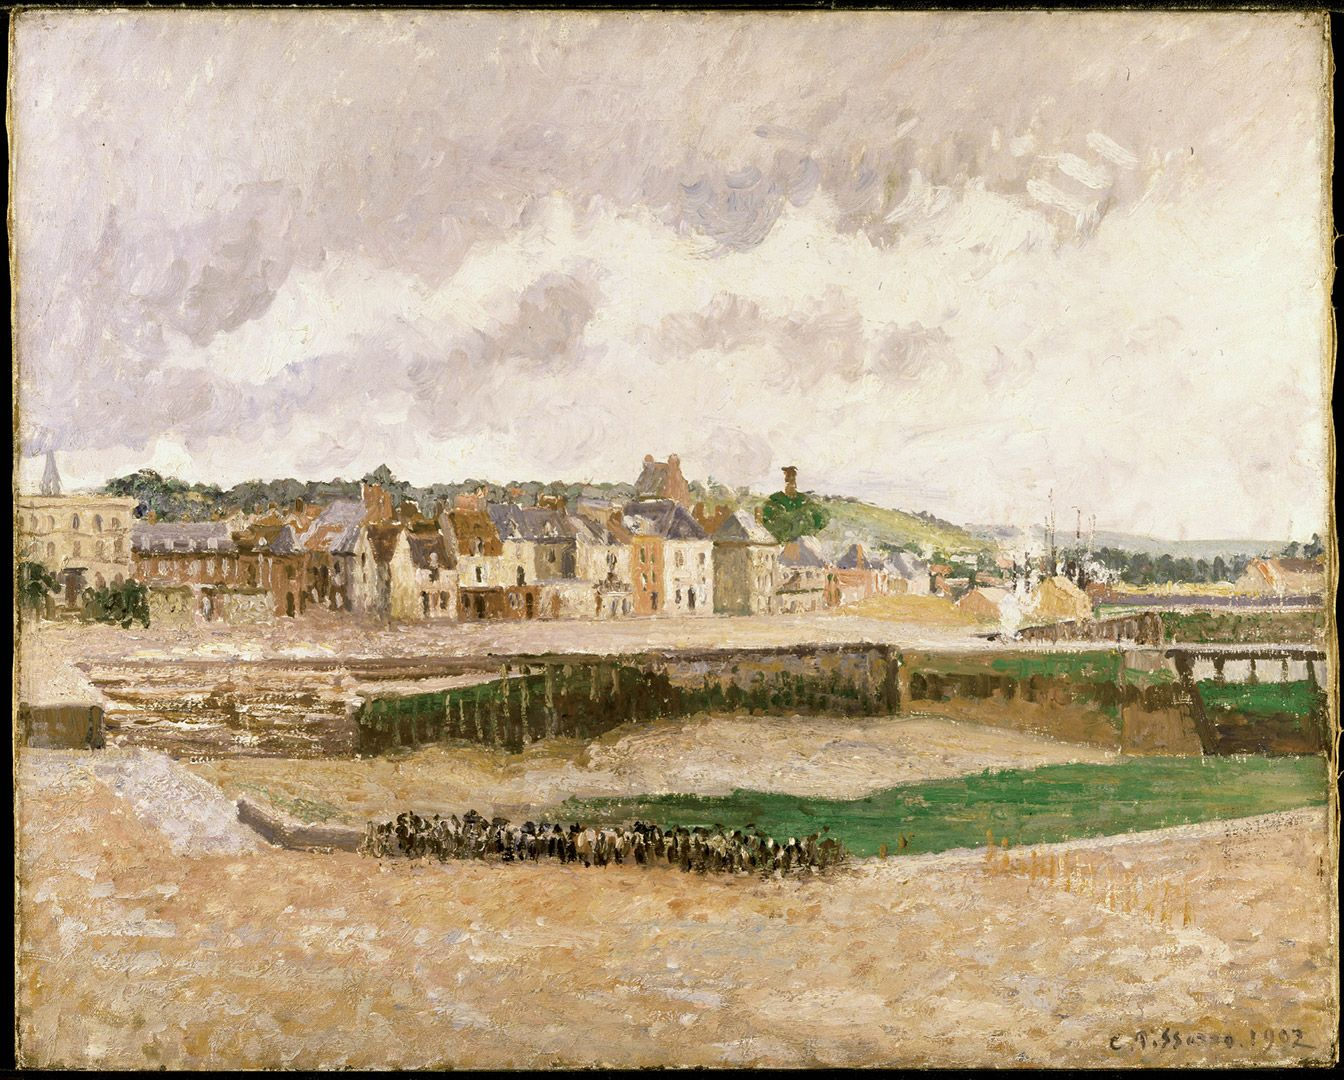 Camille Pissarro, Dieppe: Duquesne Basin at Low Tide, Afternoon, 1902, oil on canvas, 65.7 x 81.3 cm. Gift of Mr. and Mrs. Paul Ivanier.